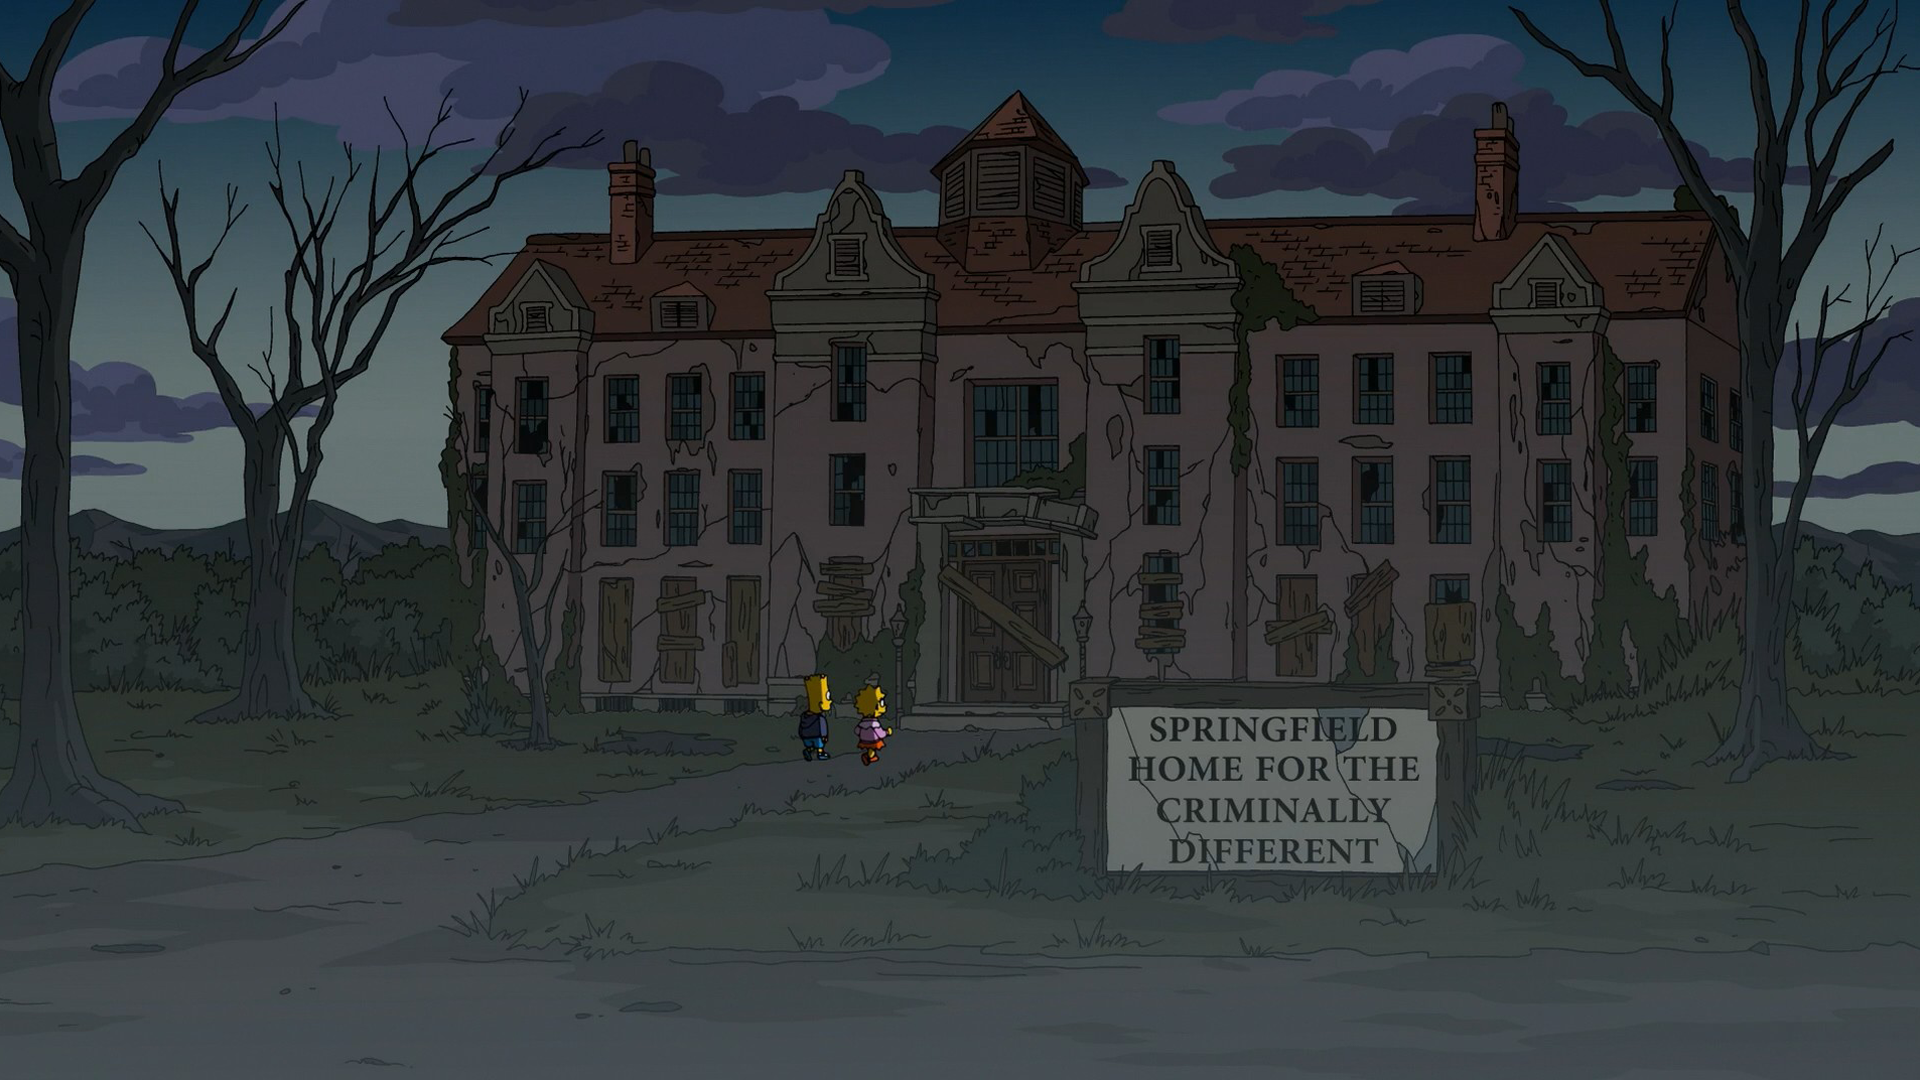 Springfield Home for the Criminally Different.png